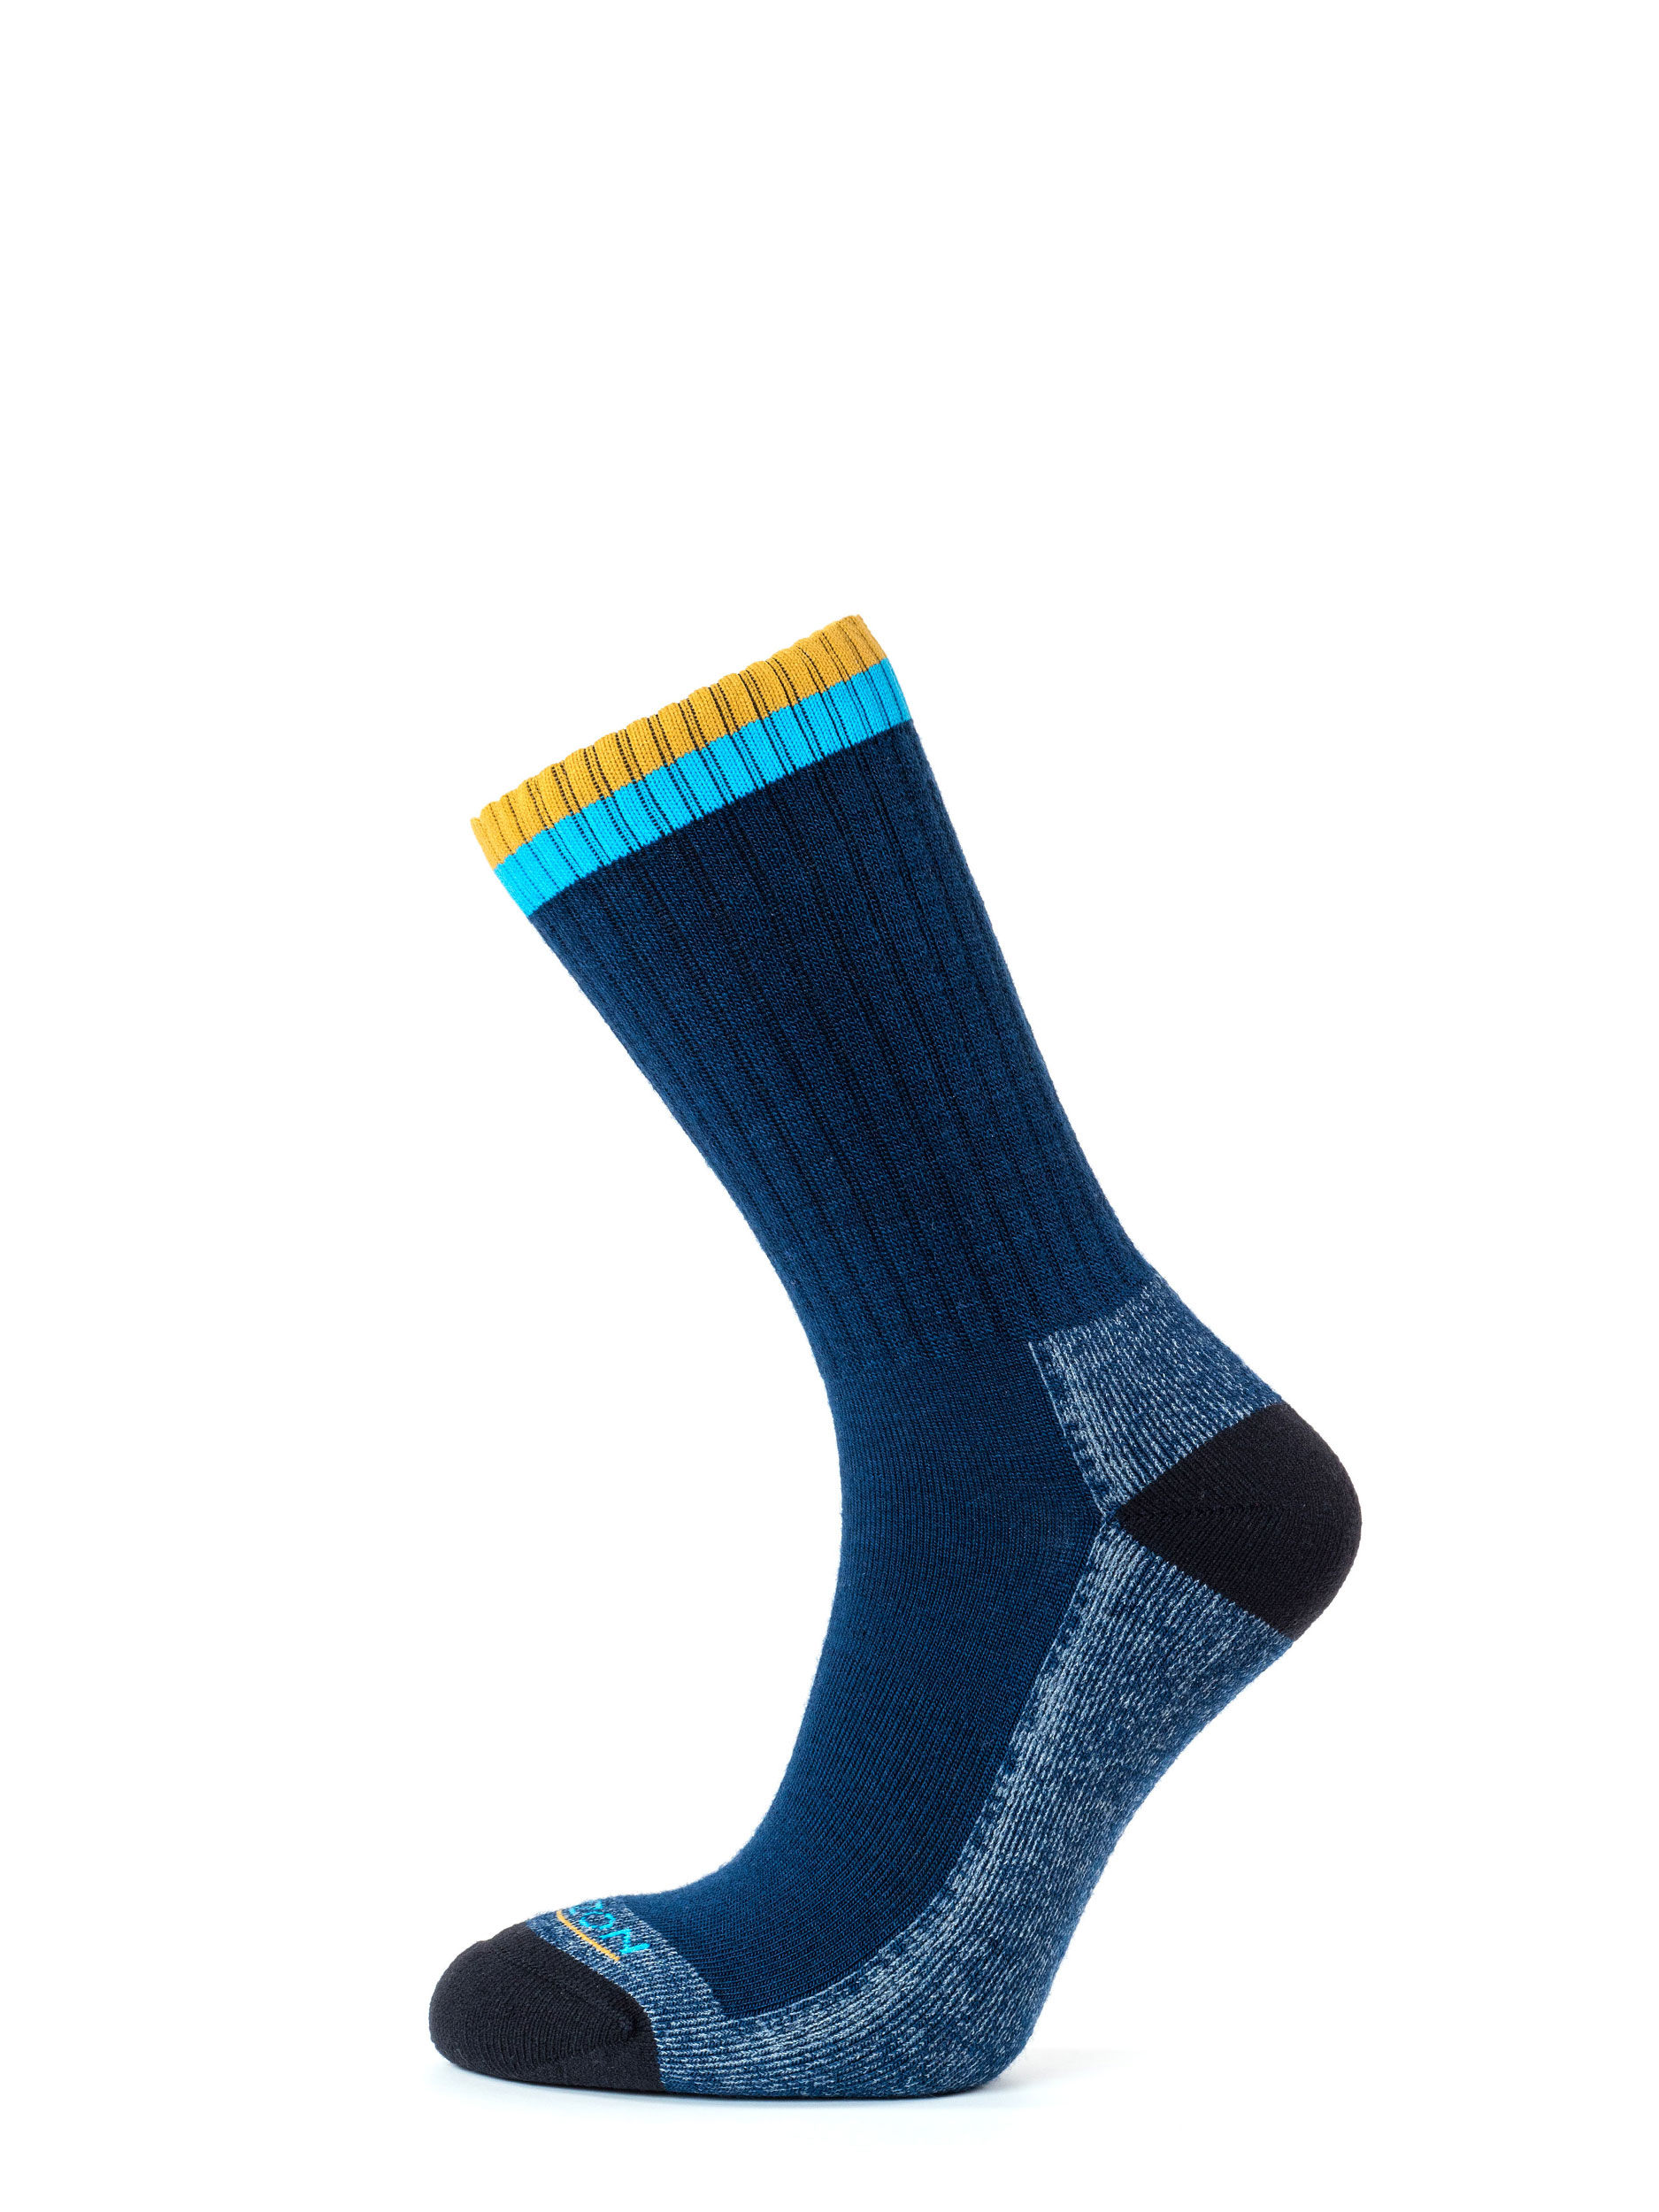 Tactical Merino Micro Crew Socks Navy Amber